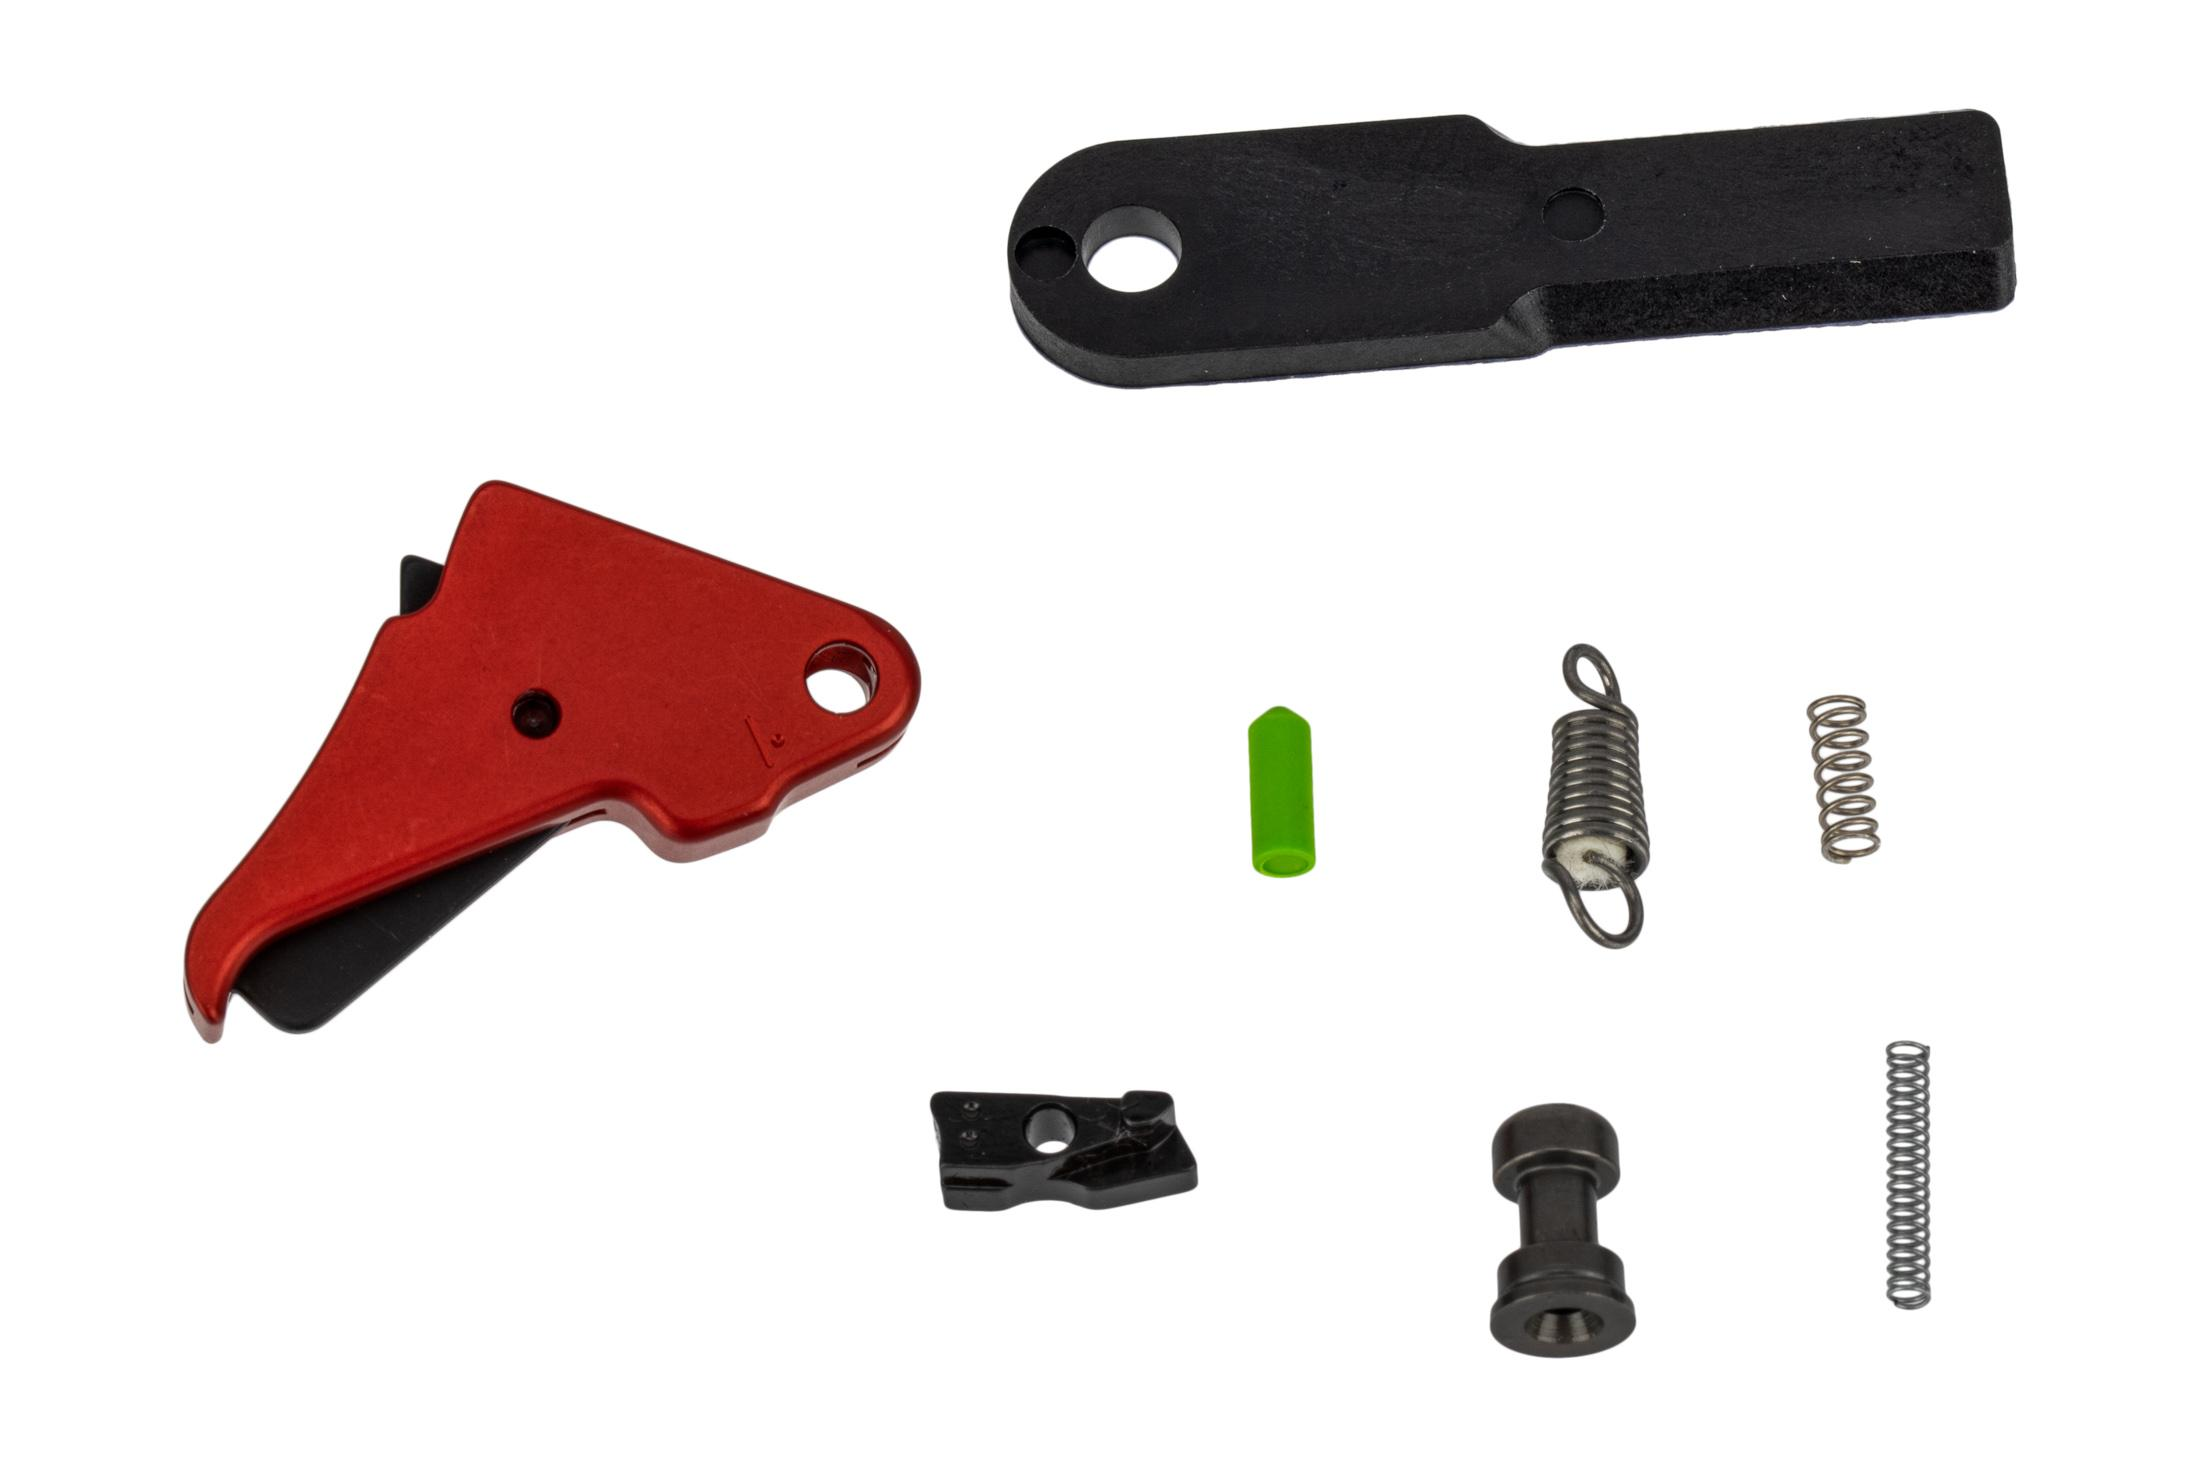 Apex Tactical M&P Shield flat trigger features a red anodized finished